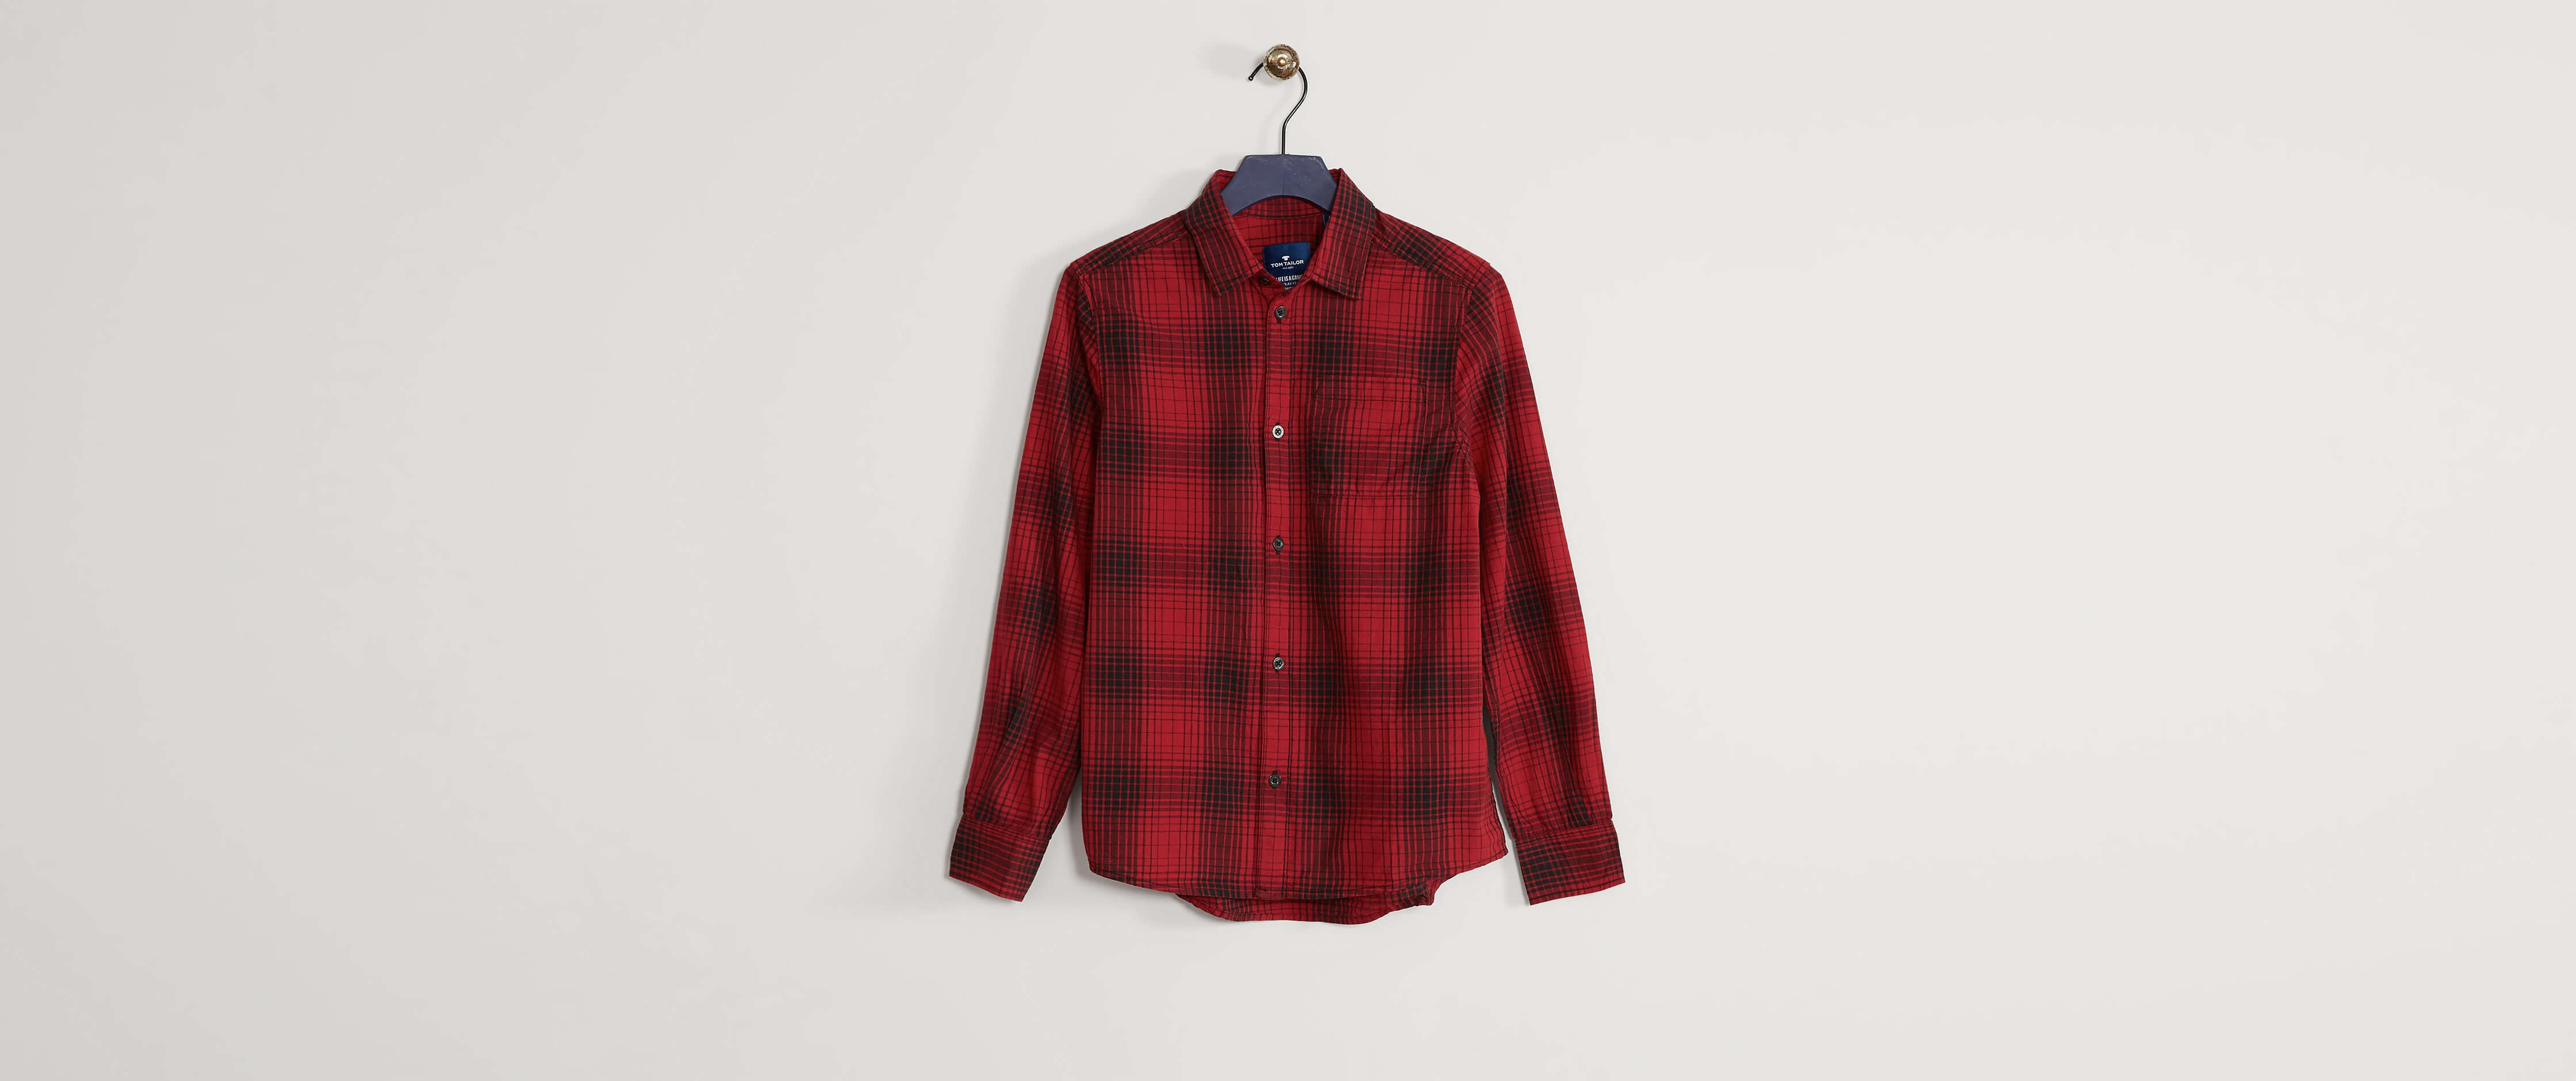 sleek great prices best shoes Boys - Tom Tailor Plaid Shirt [6XuXh0708362] - $42.99